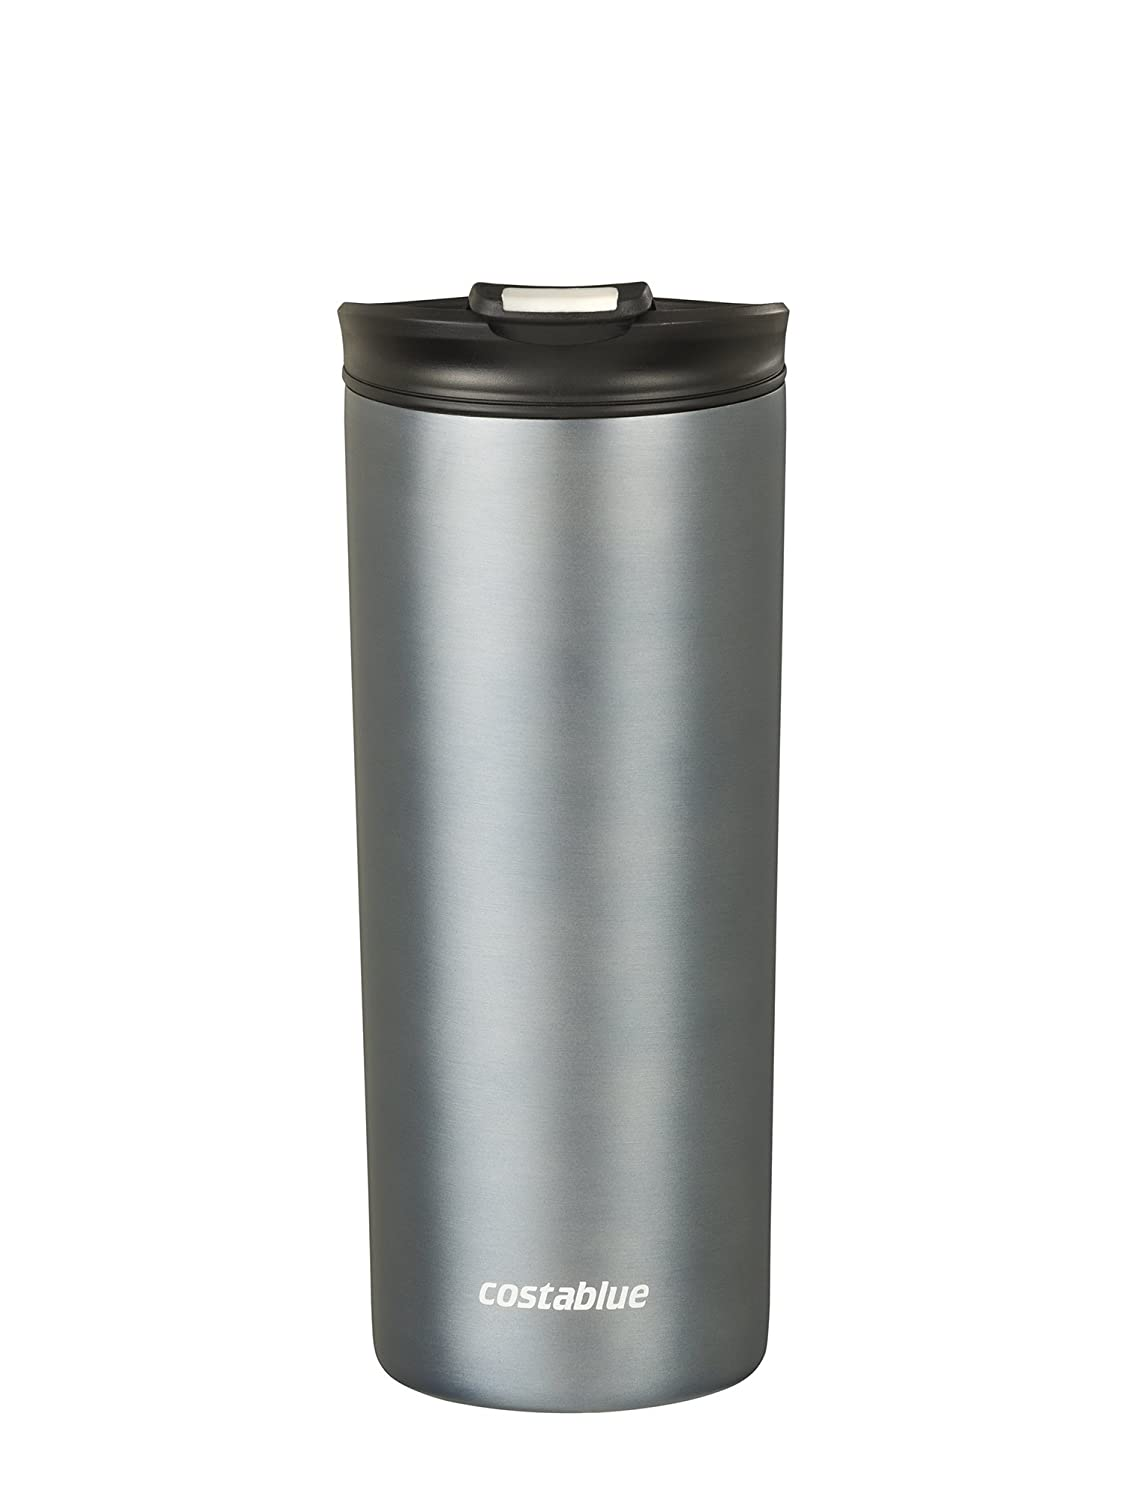 Costablue Vacuum Insulated Stainless Steel Travel mug , 16 Oz Easy to clean and leak proof lid, Color Matte Black